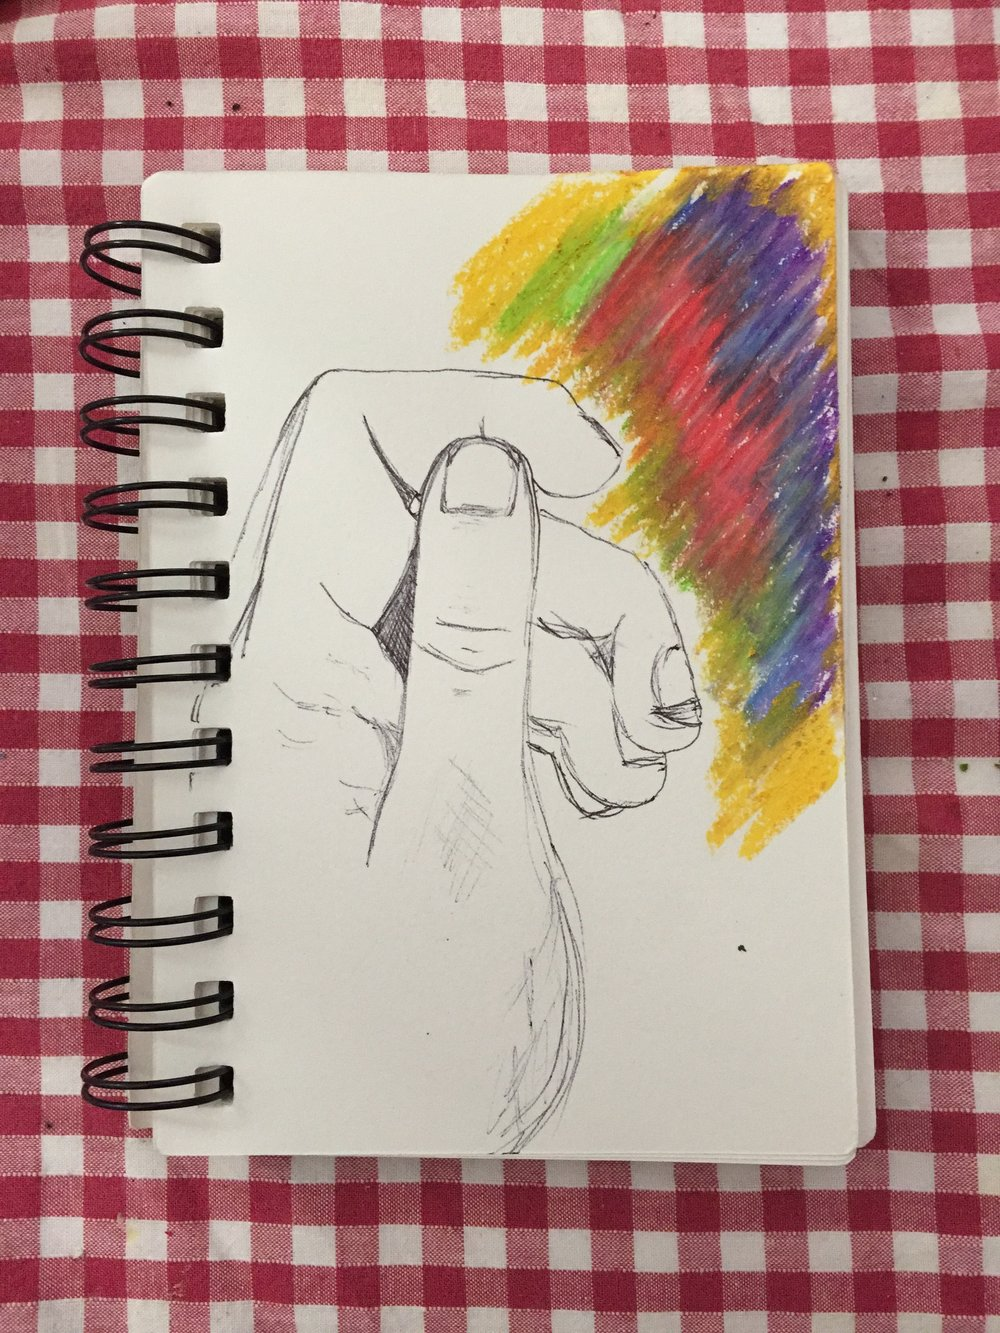 My crappy hand :) I really enjoyed doing this!